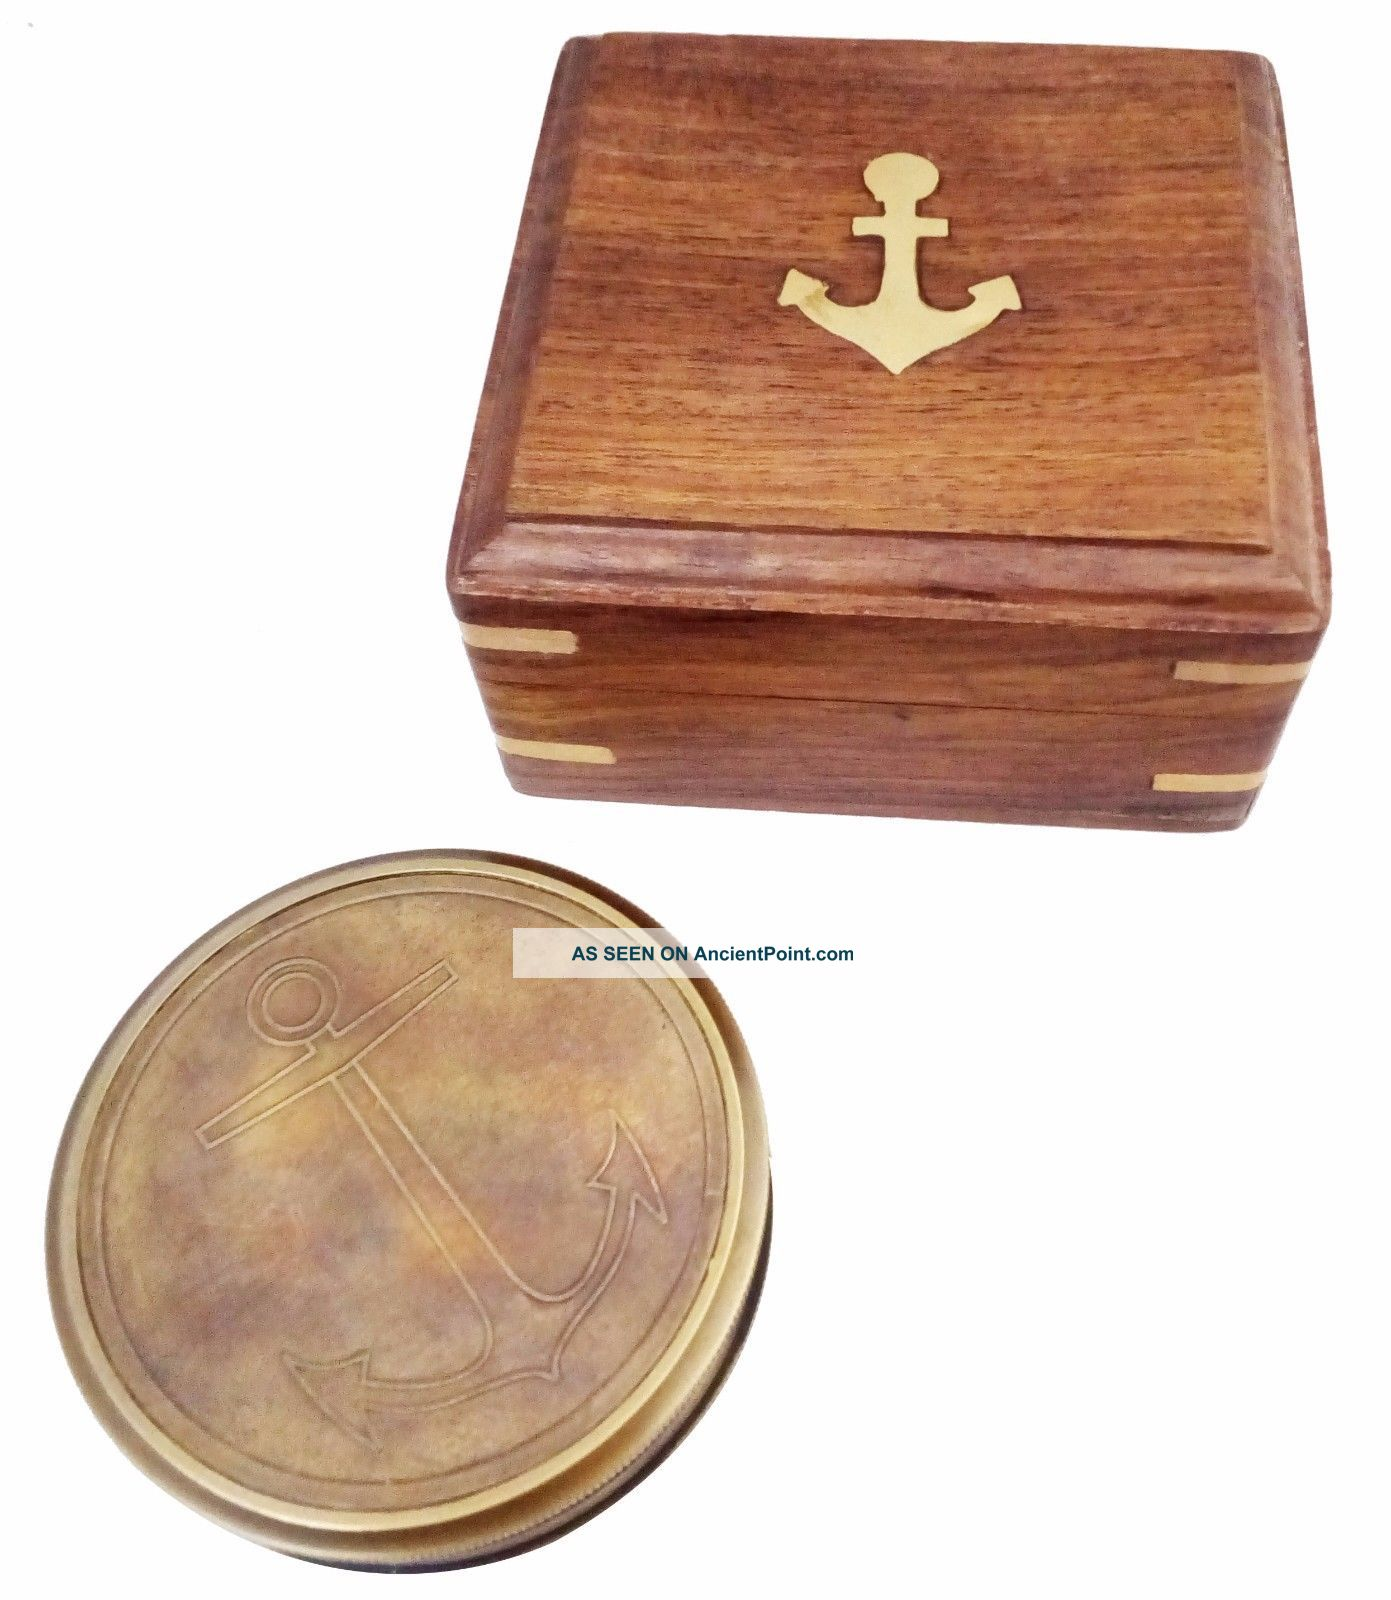 Artshai Antique Look Magnetic Compass With Wooden Box And 40 Years Calendar Compasses photo